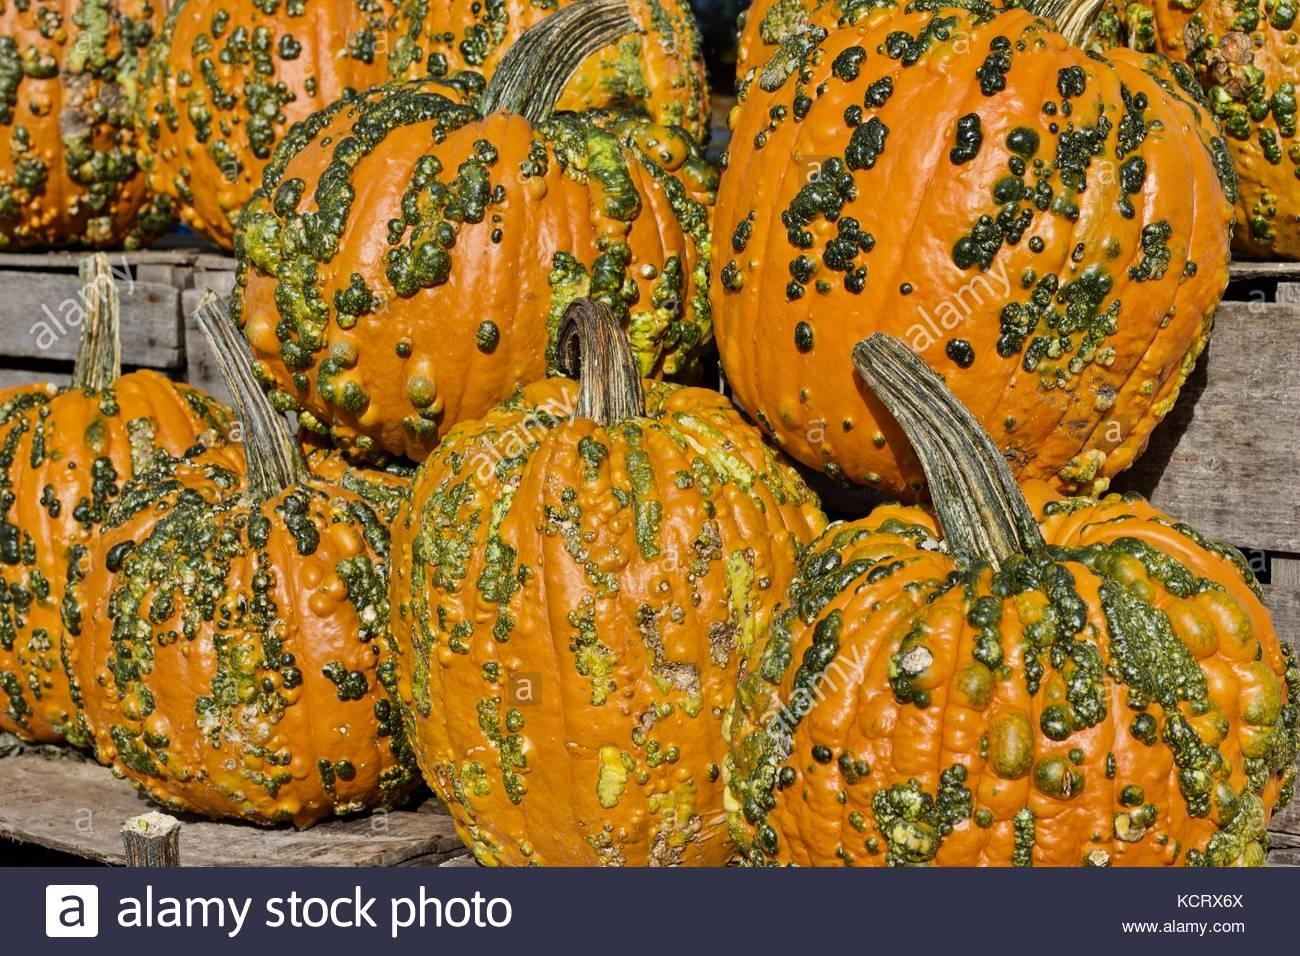 Bumpy Squash Stock Photos Alamy